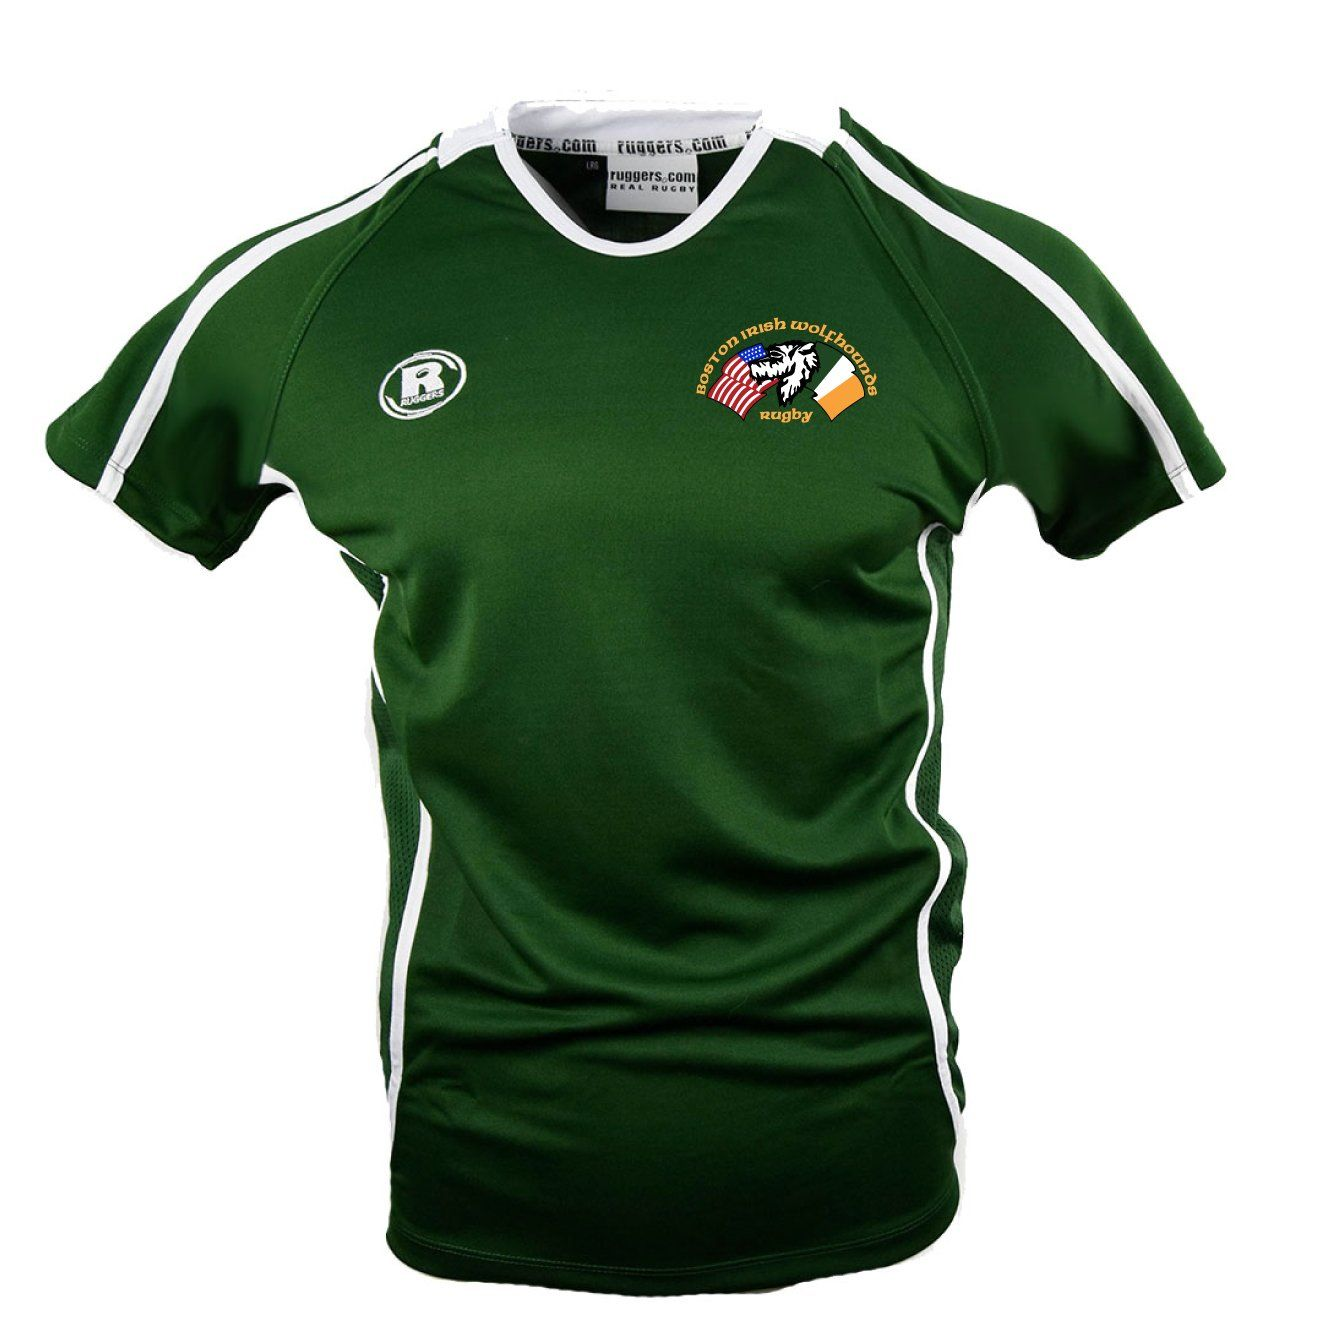 Wolfhounds Youth Training Jersey